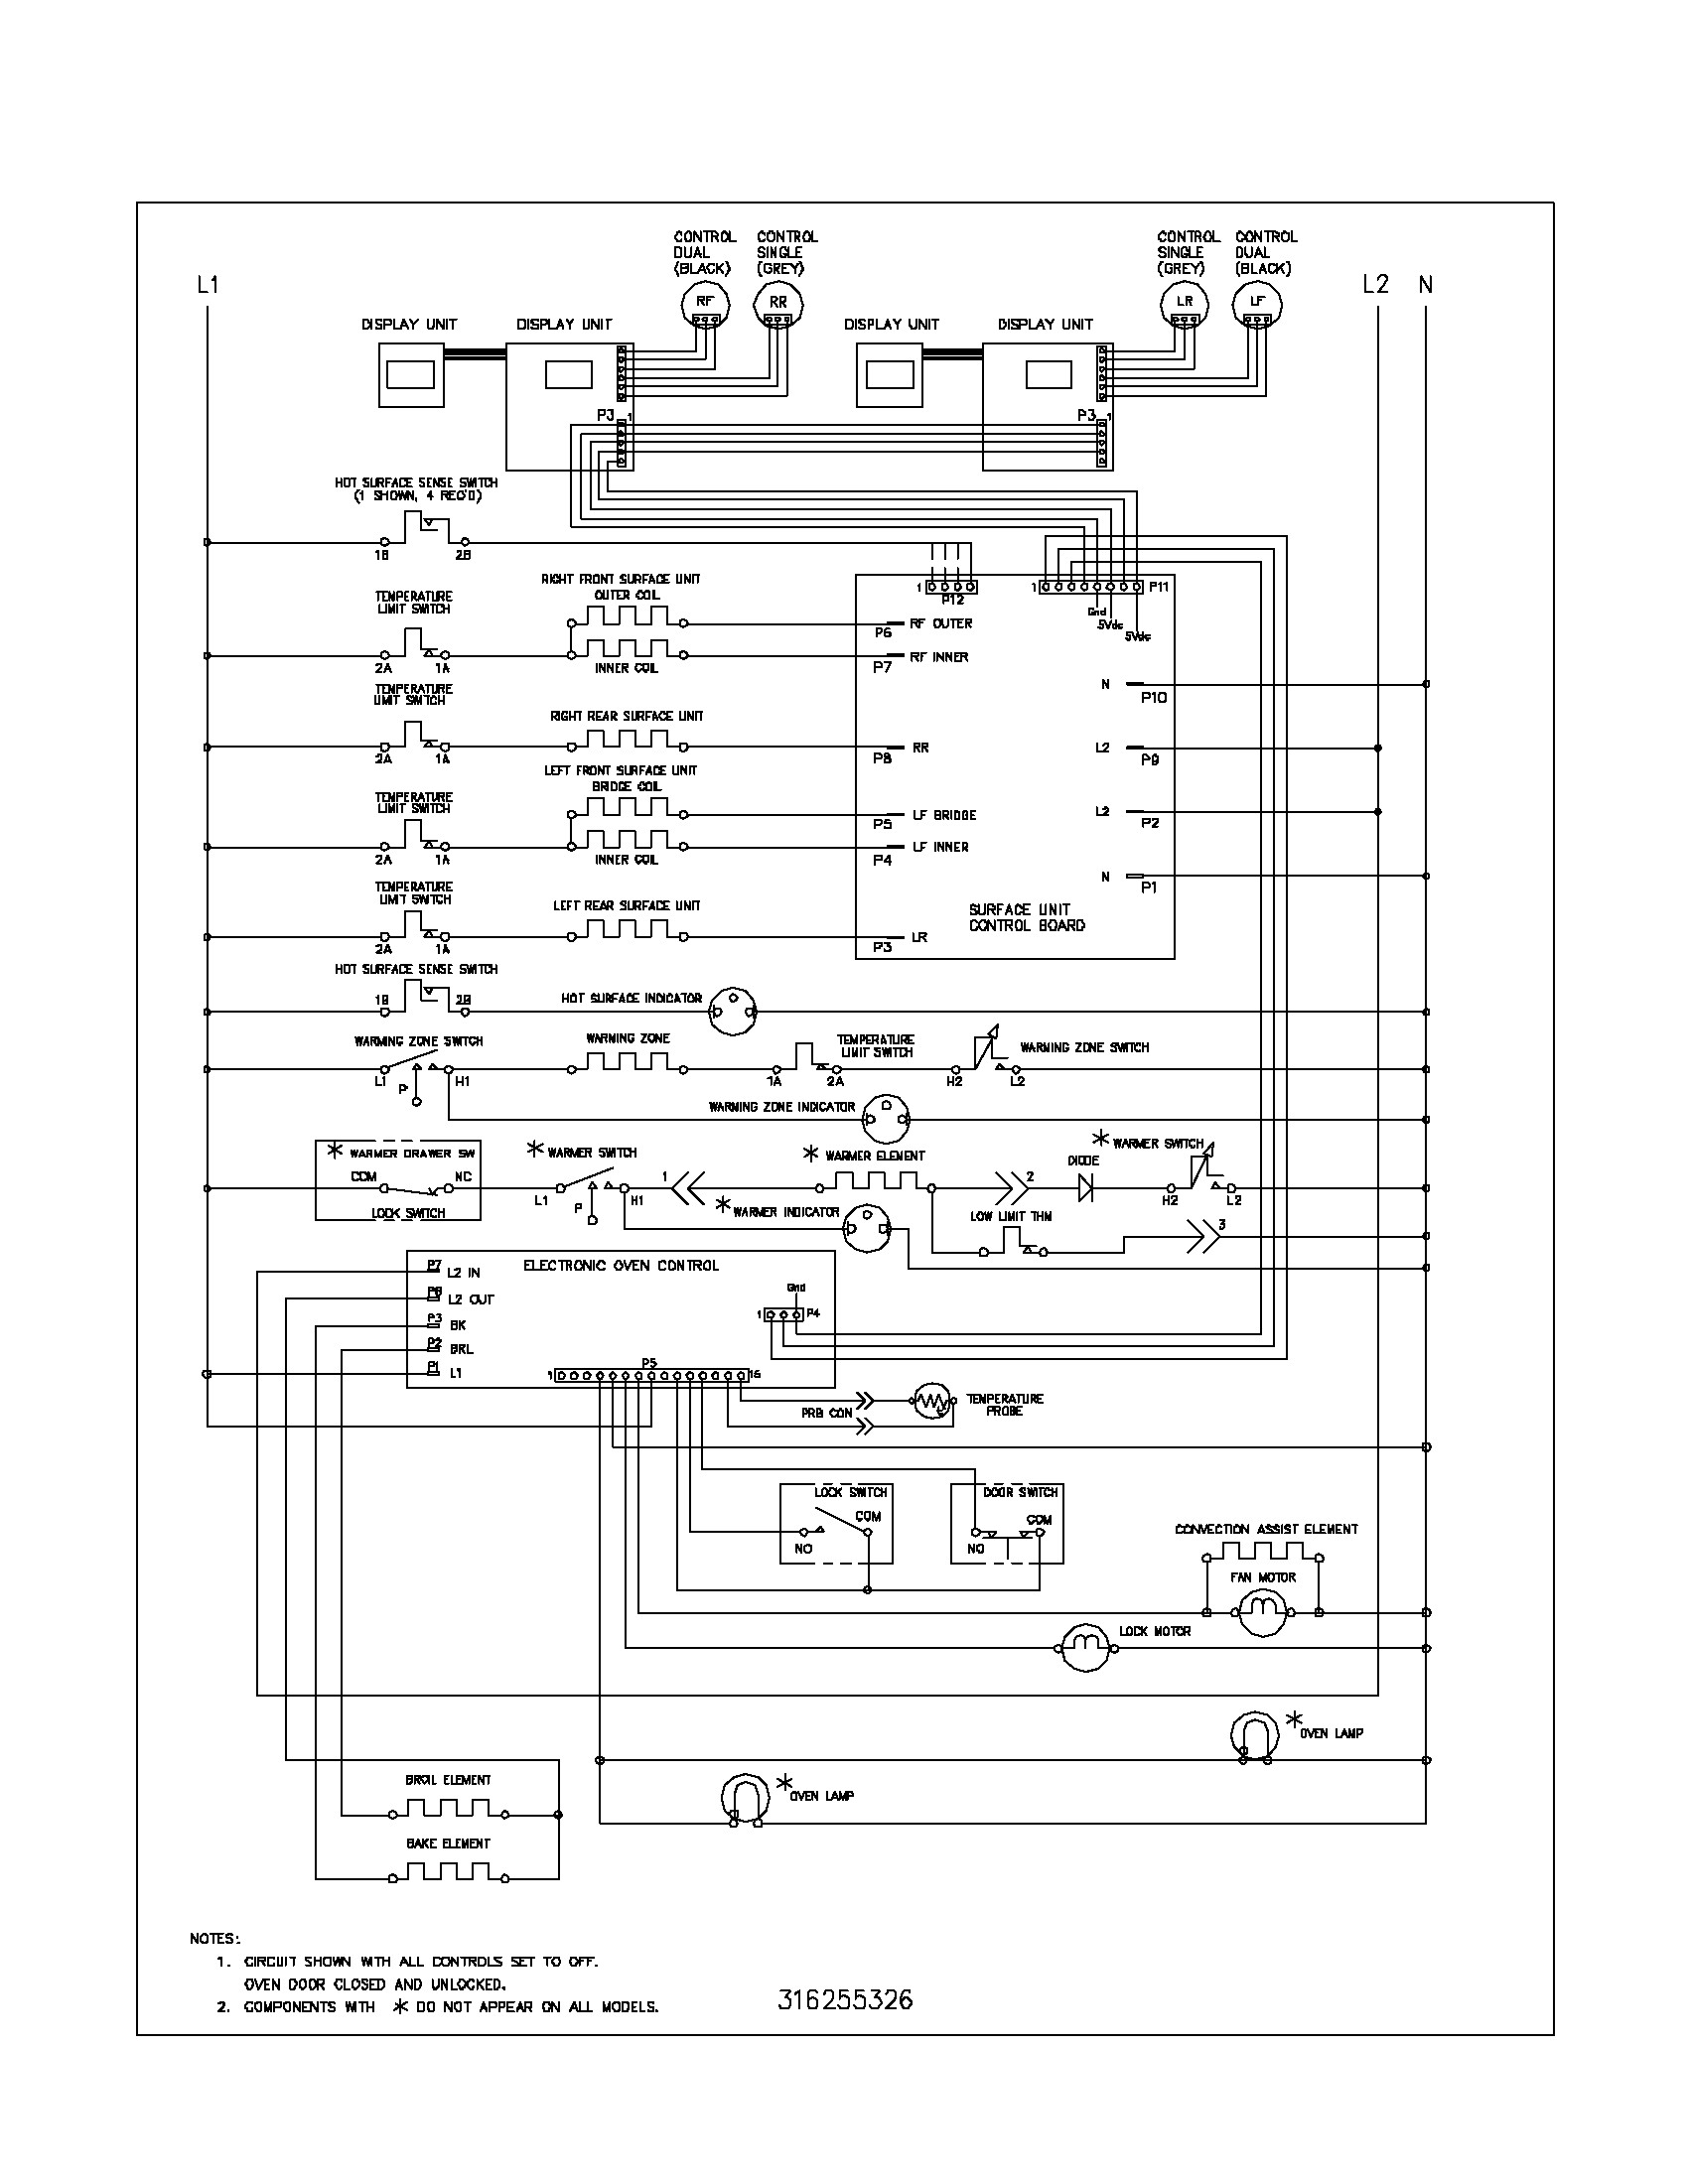 Armstrong Furnace Wiring Diagram Older - Fusebox and Wiring Diagram  electrical-die - electrical-die.sirtarghe.itdiagram database - sirtarghe.it